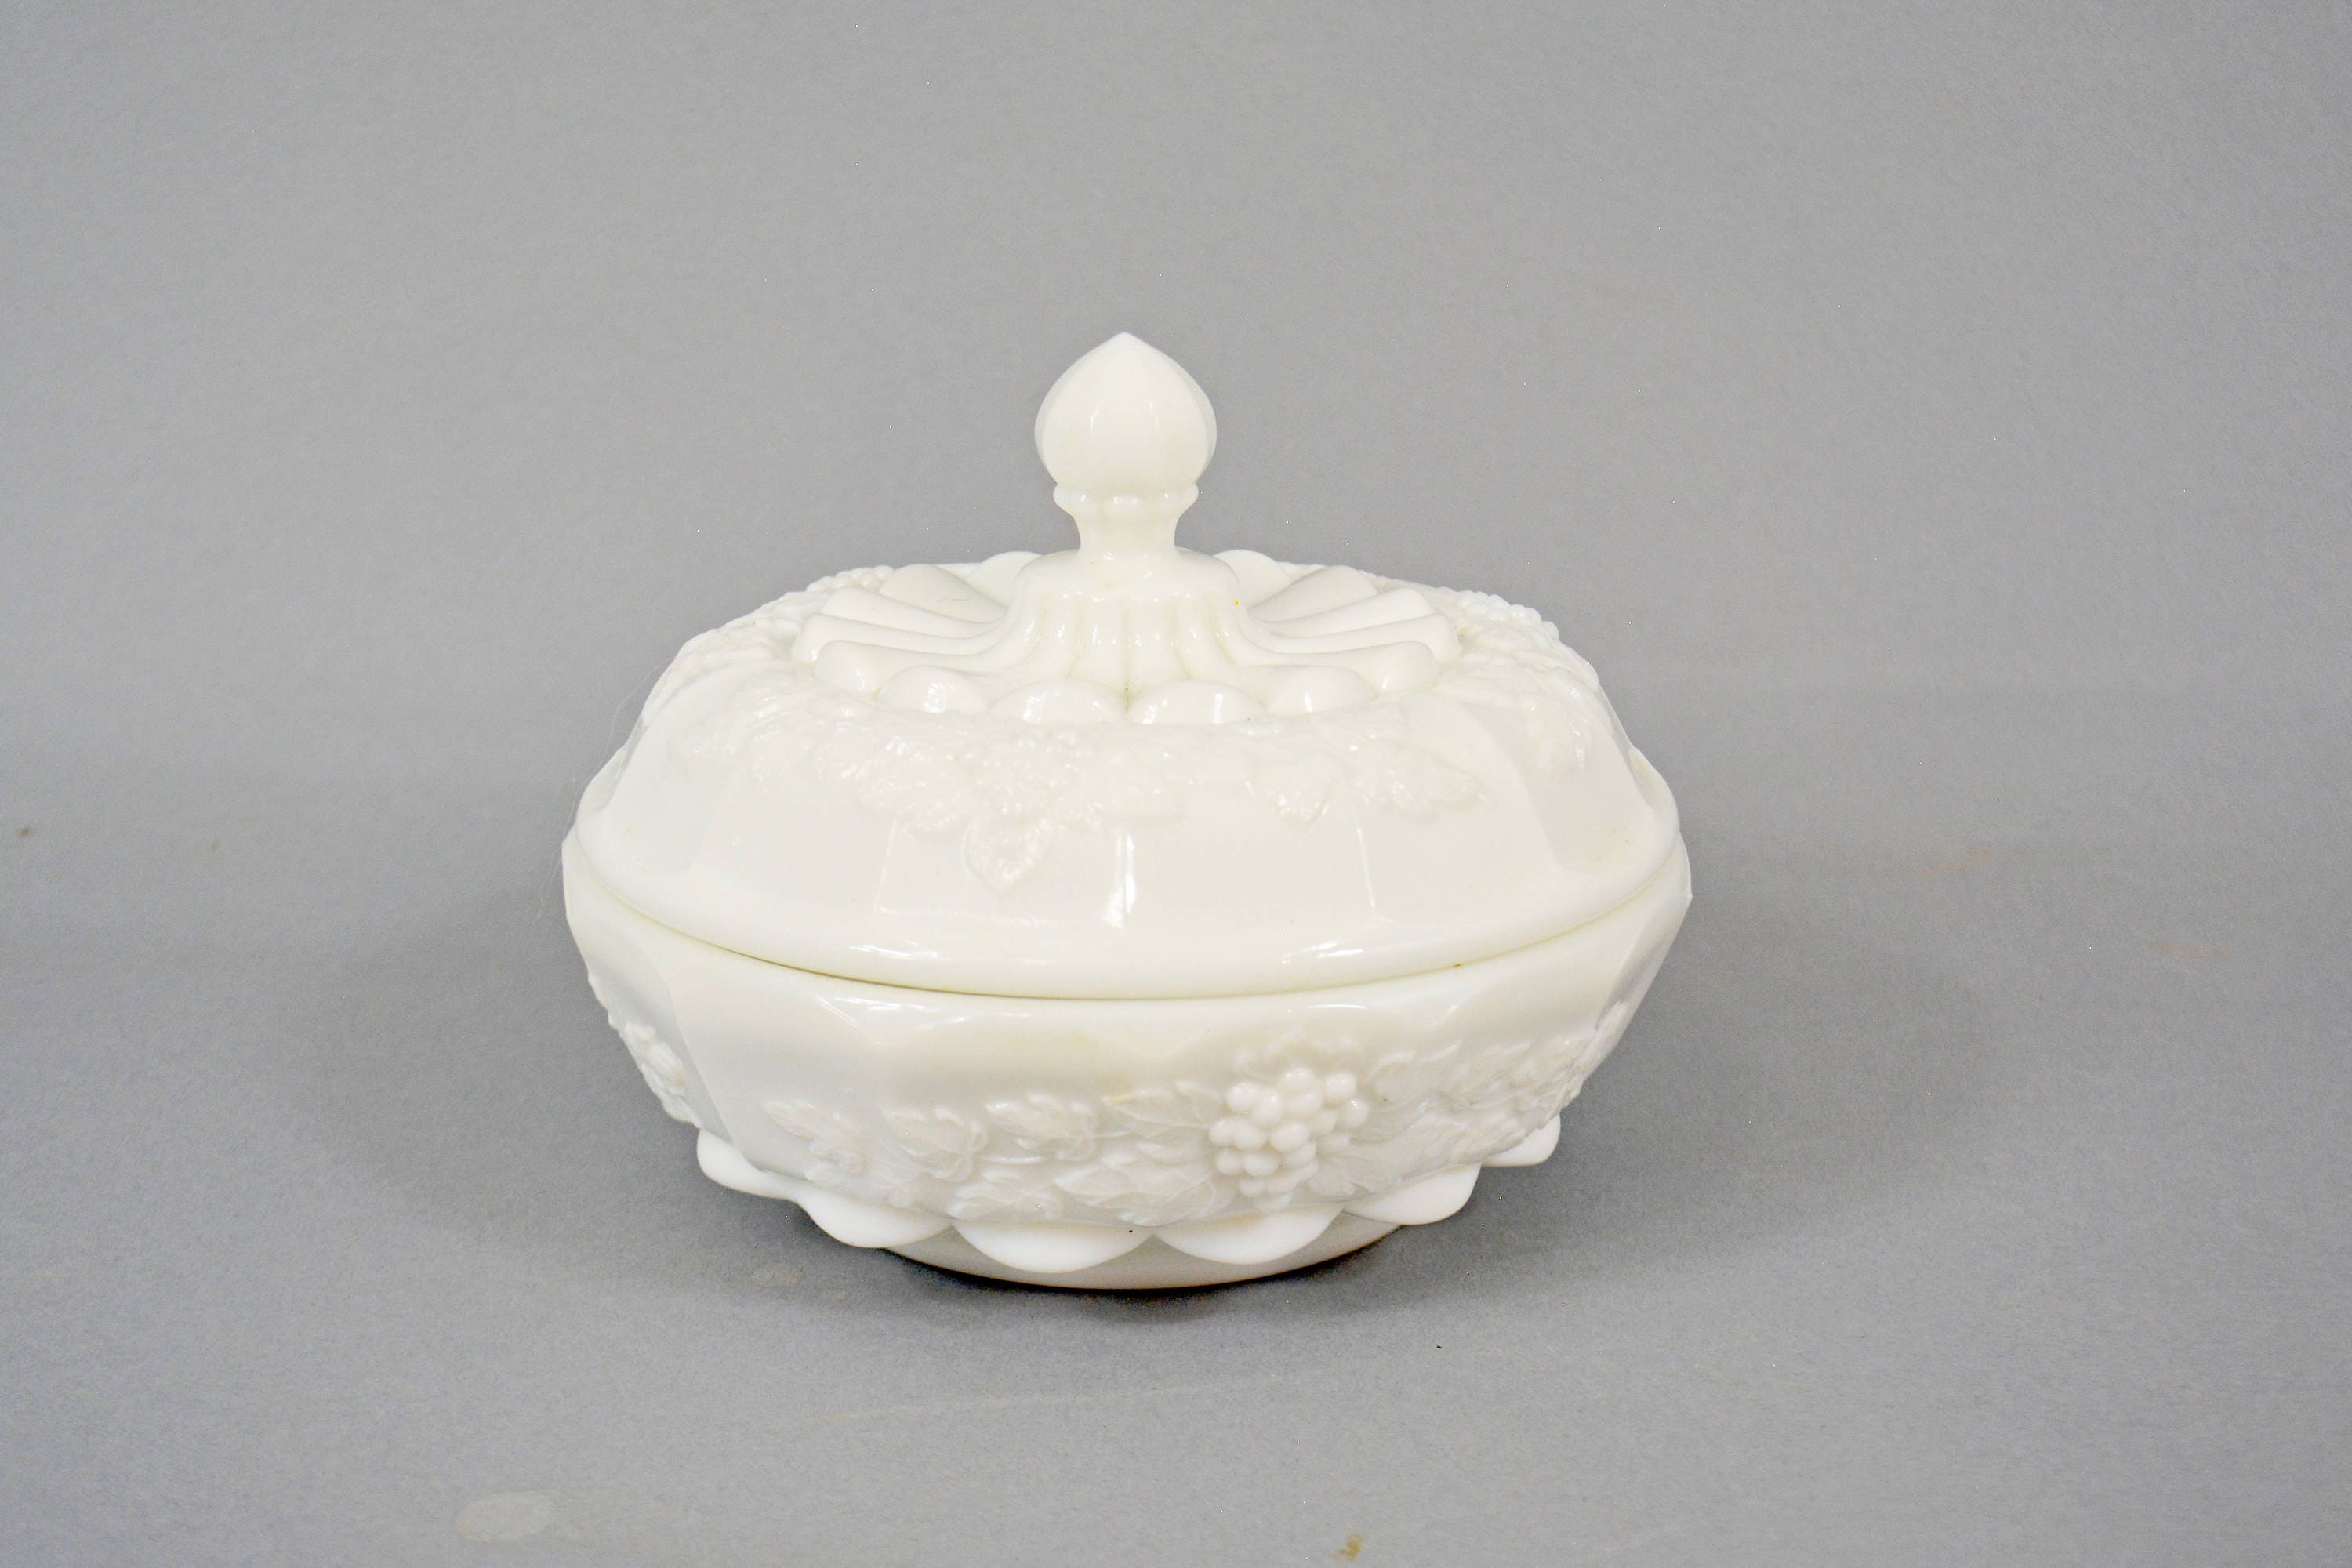 Westmoreland Candy Dish White Milk Glass Candy Dish with Lid